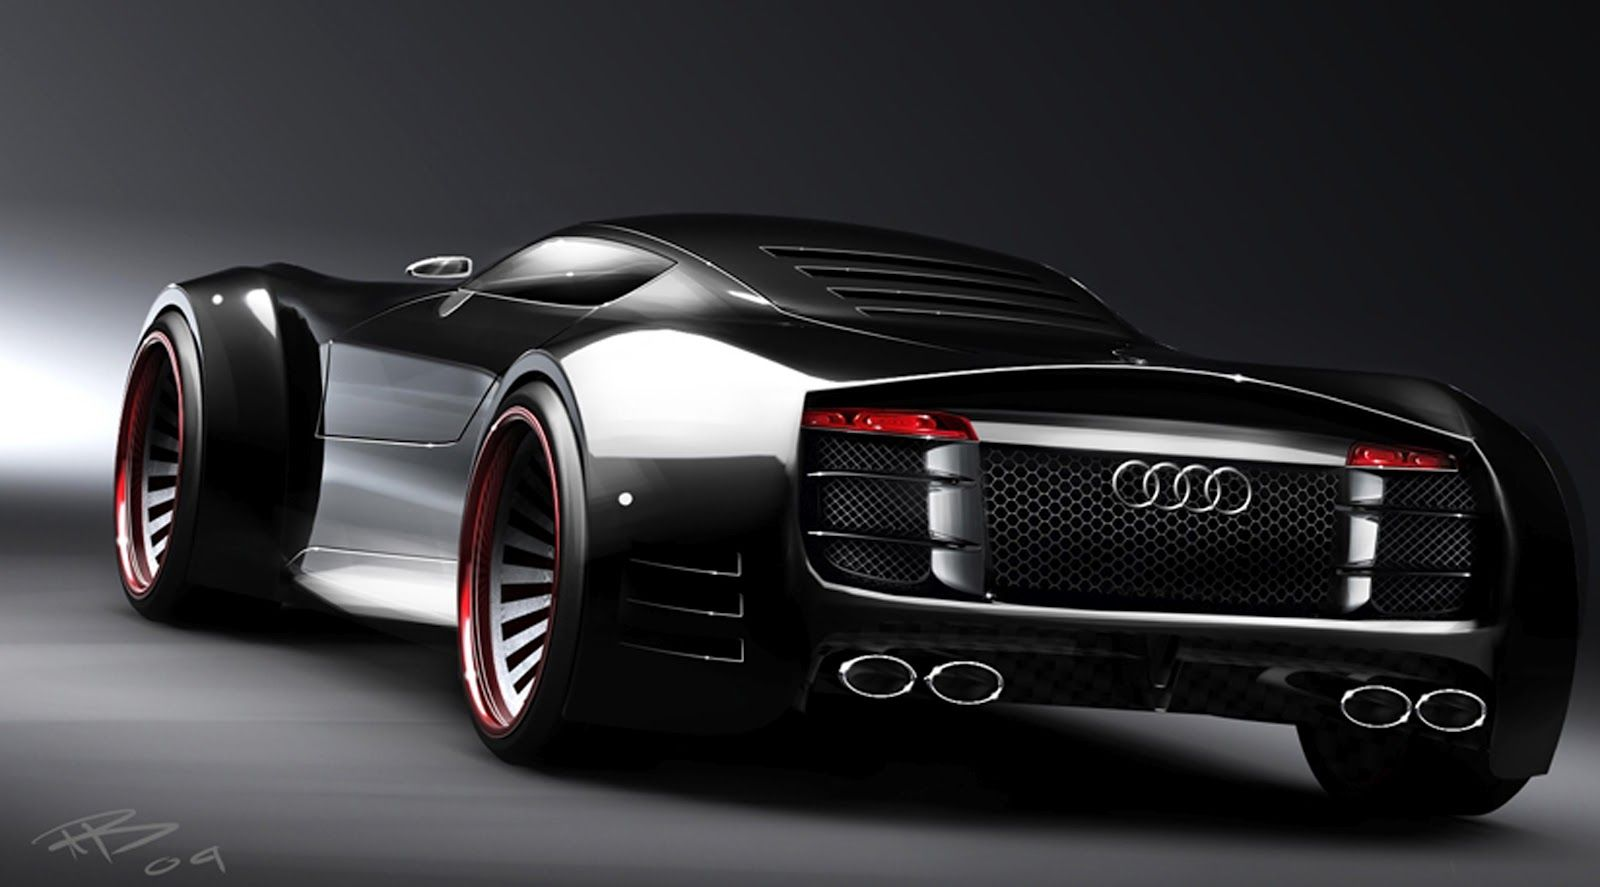 newaudisportscar  Autok  Pinterest  Audi sports car Audi